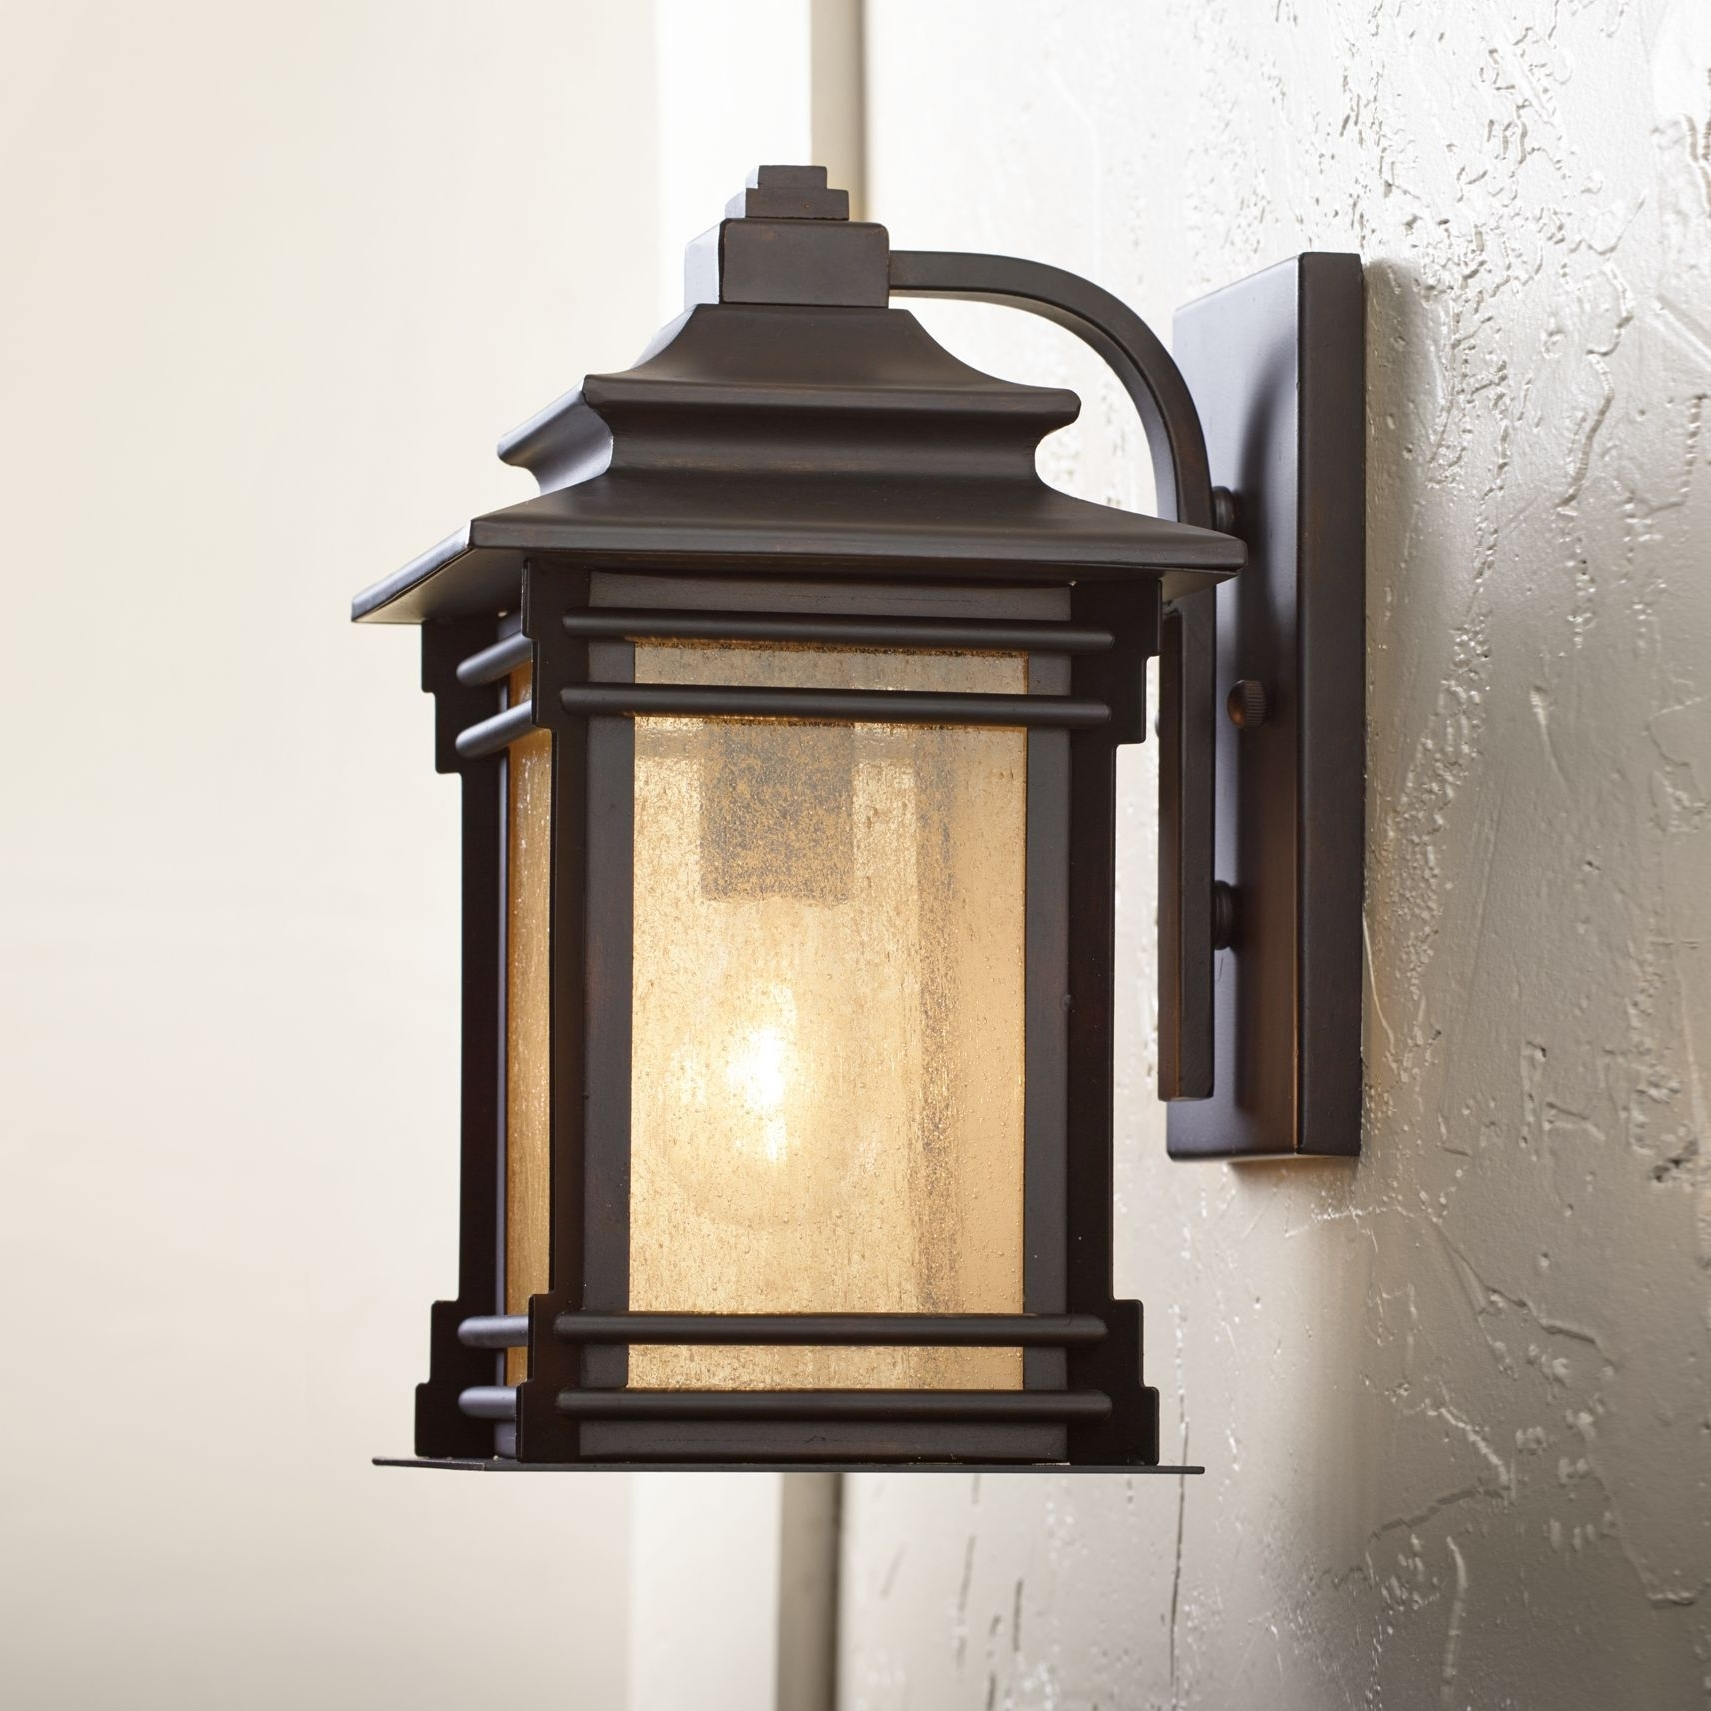 Most Recent Large Outdoor Lanterns Intended For Outdoor Lighting Amazing Carriage Lights Wall Extra Large Sconces (View 12 of 20)